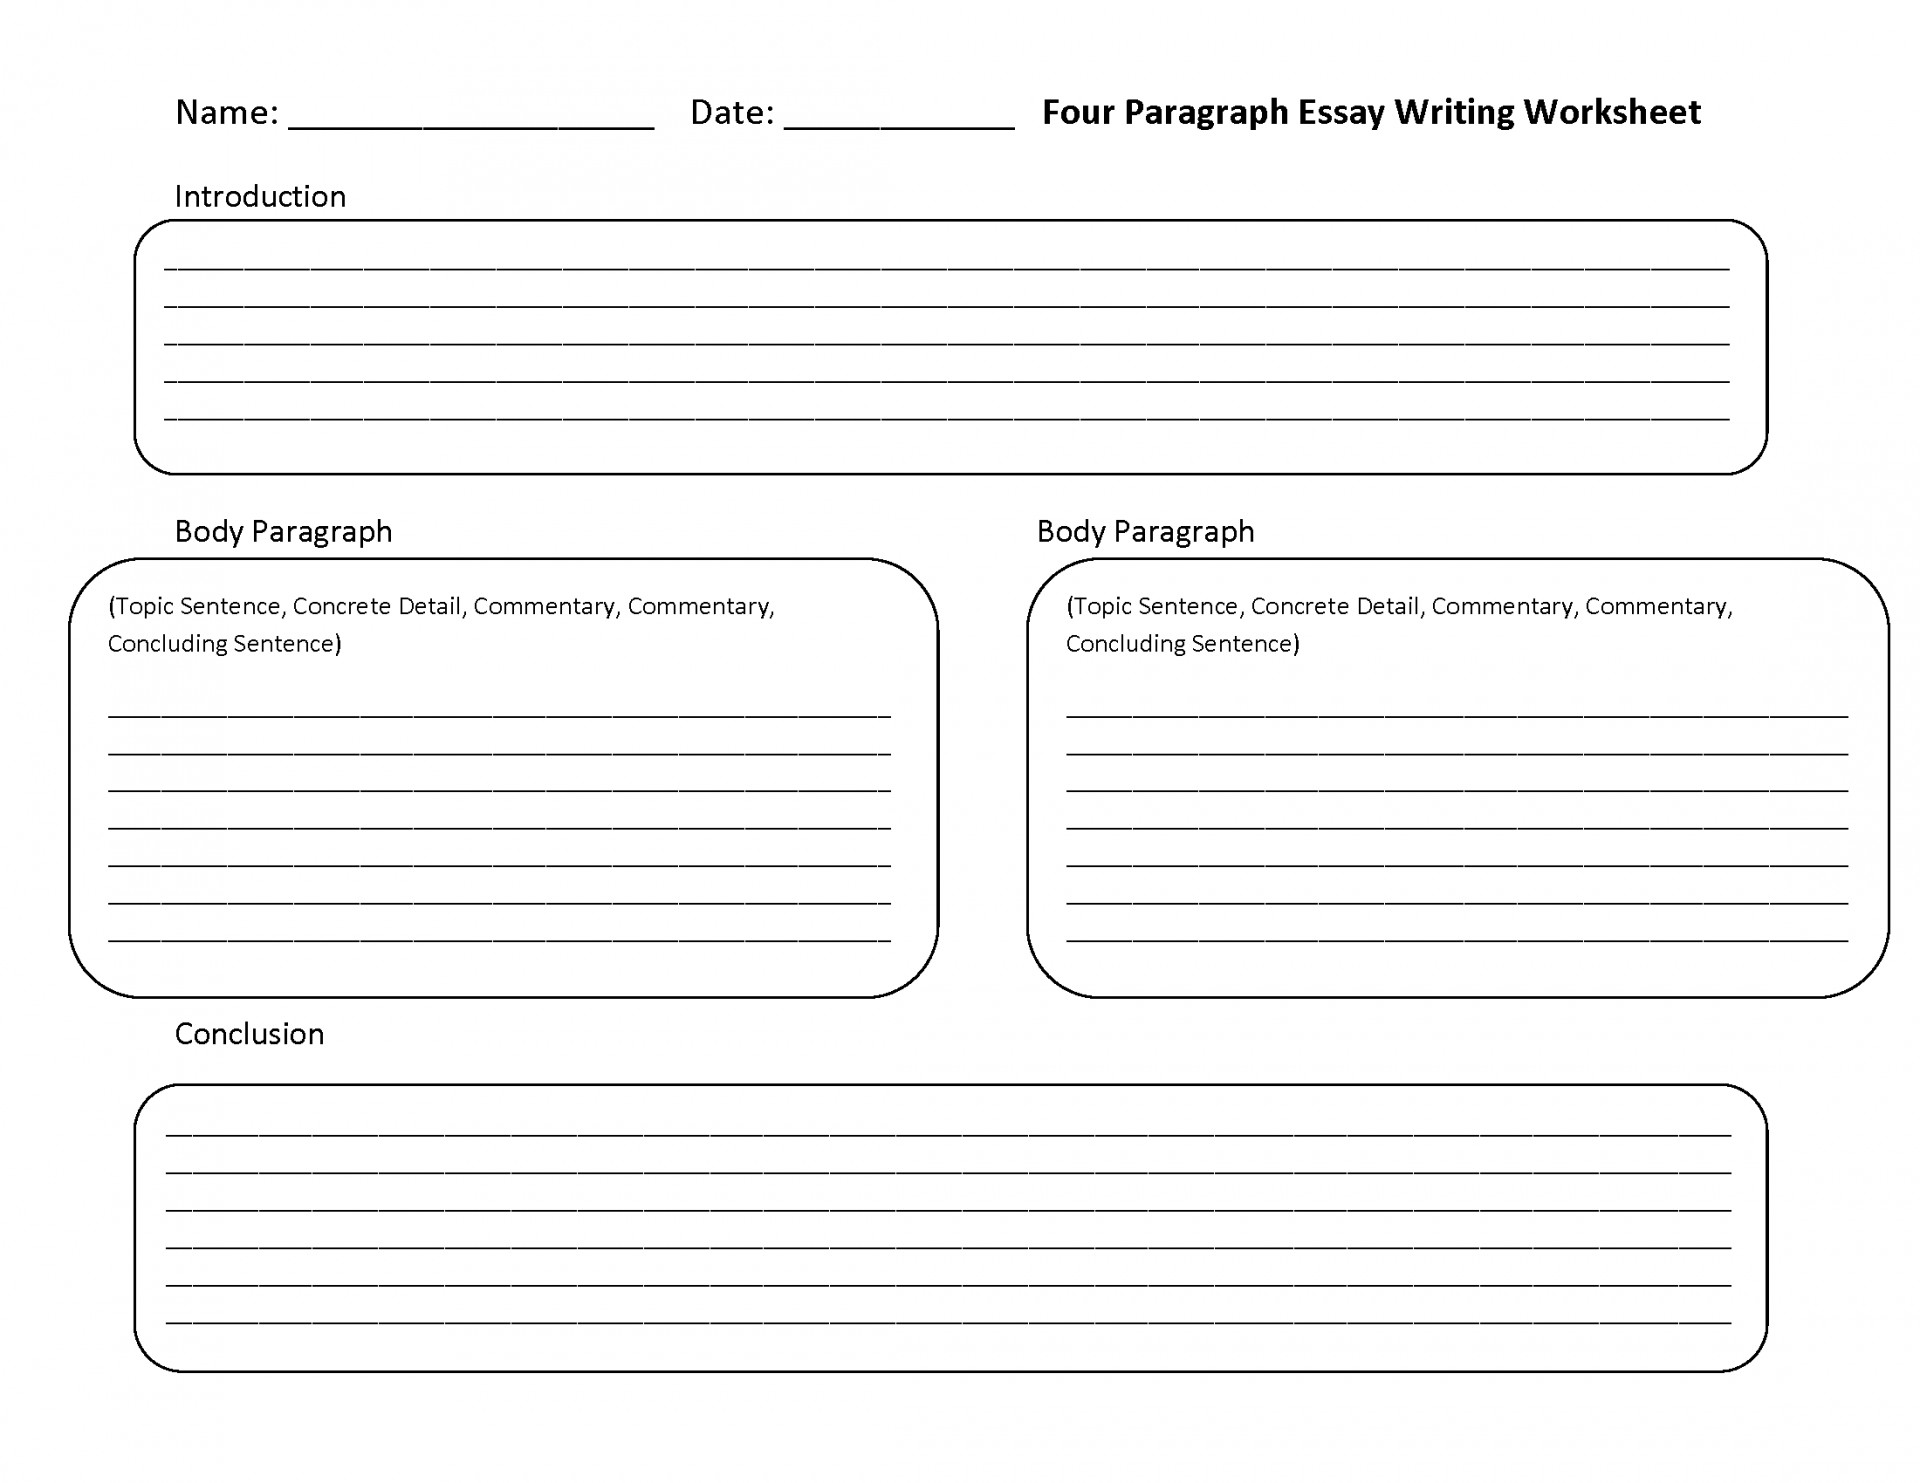 004 Essay Example Writing Worksheets High School Process